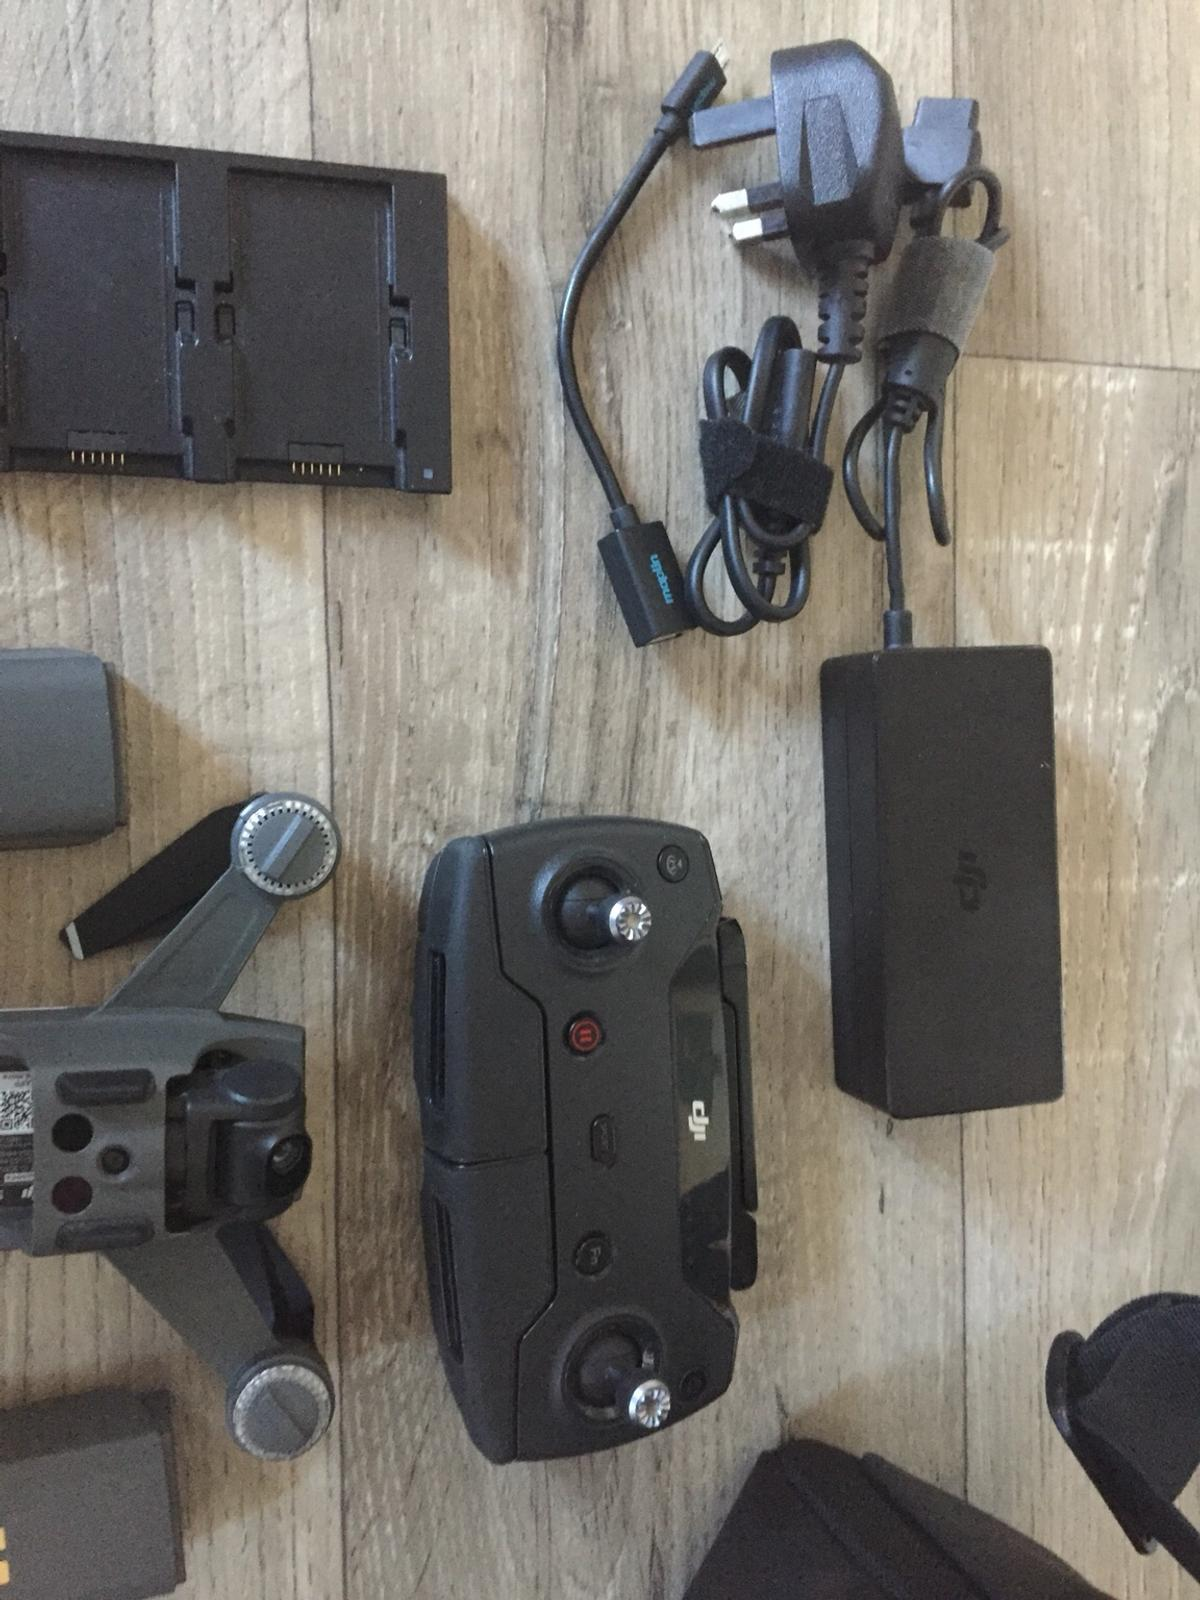 DJI Spark Fly More Combo in WA7 Brook for £325 00 for sale